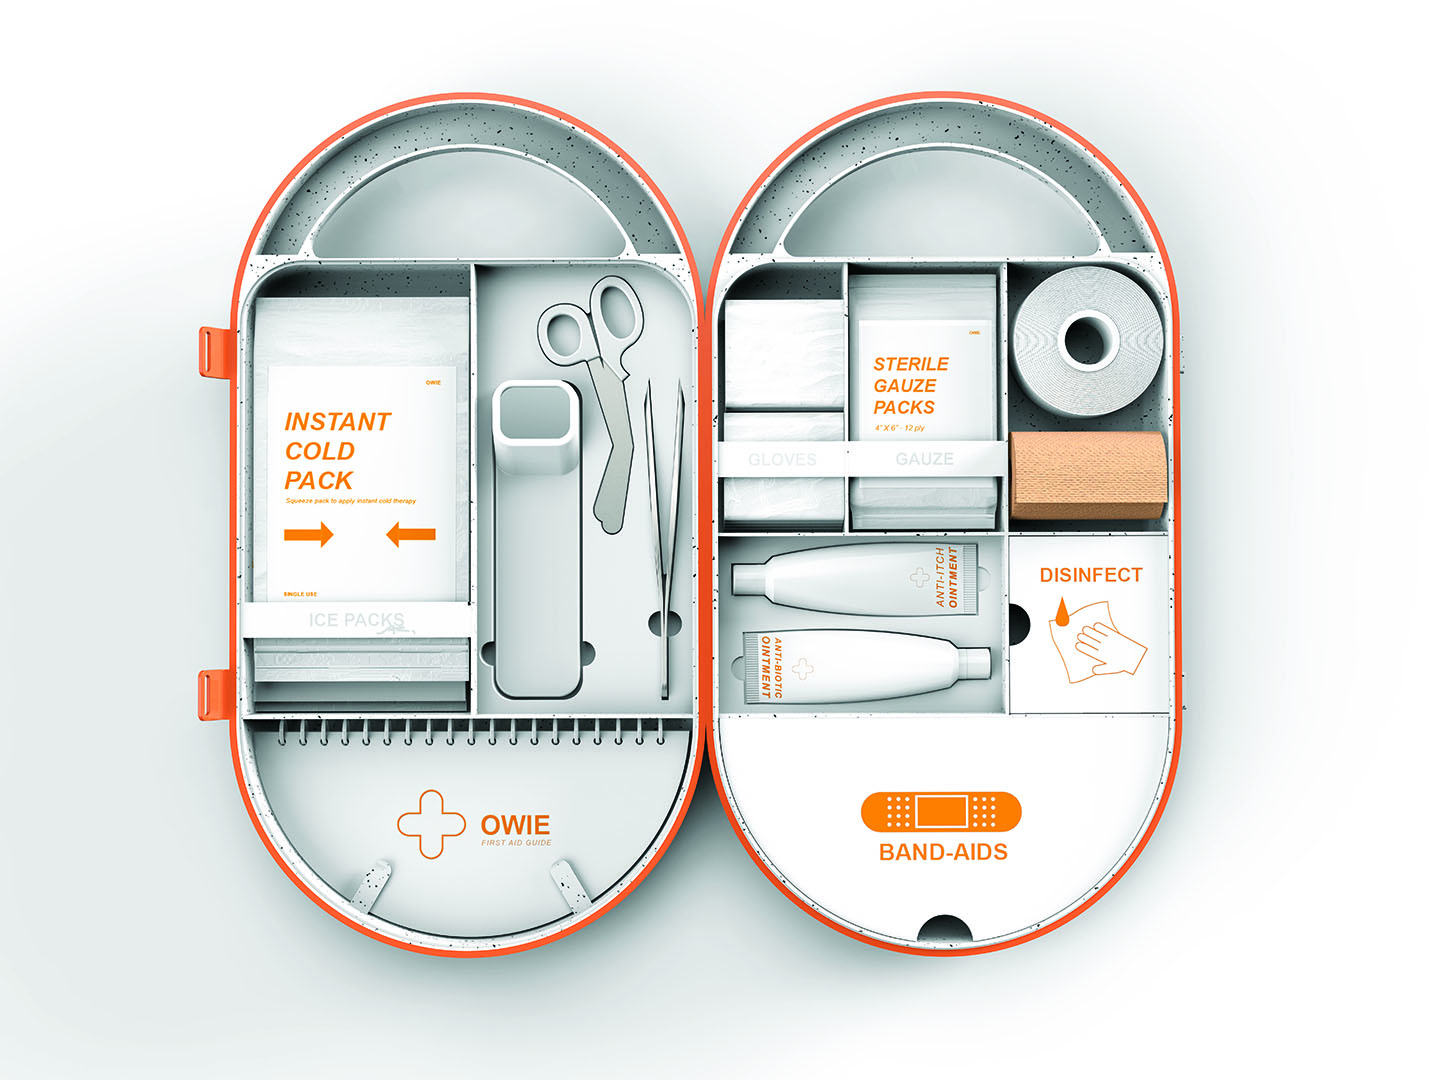 First aid kit design, orange and white, contents inside